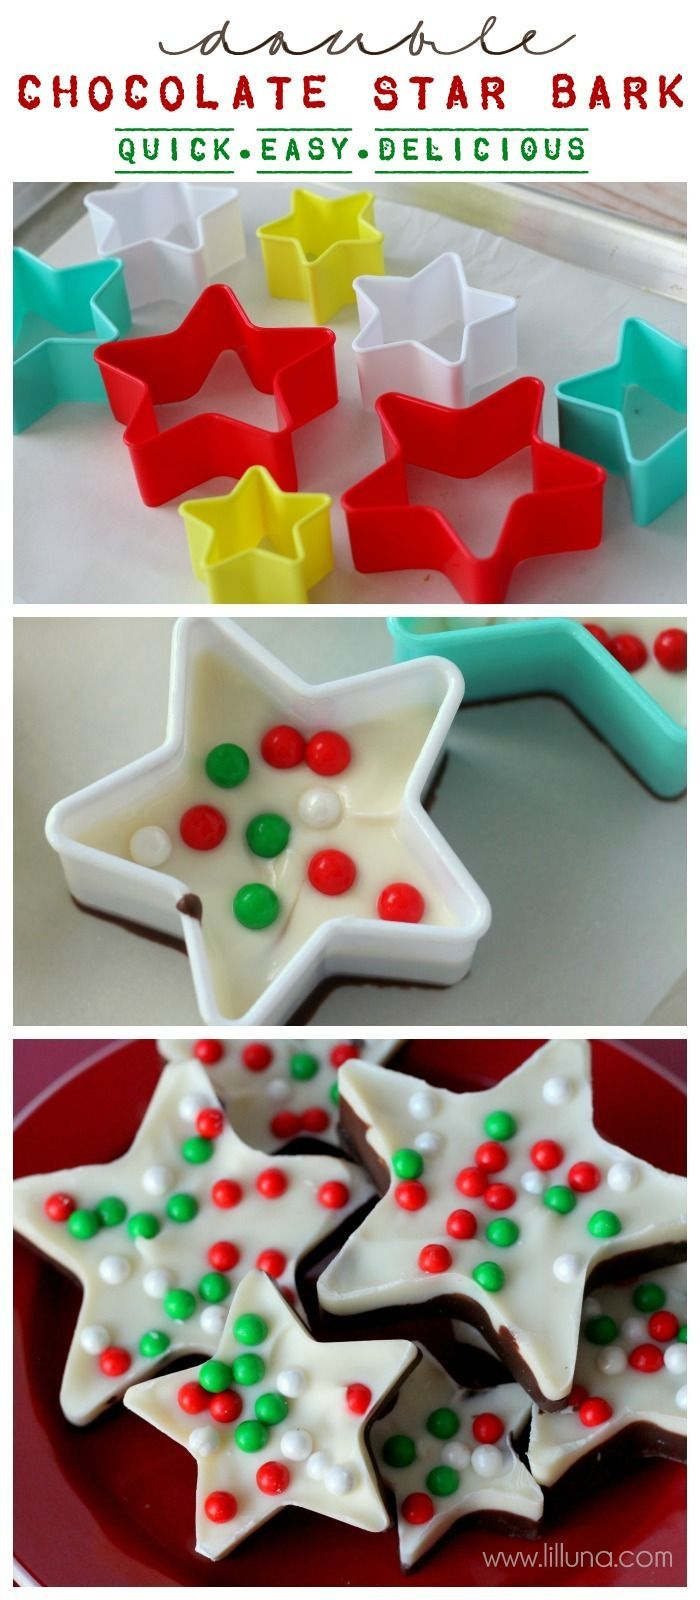 Double Chocolate Star Bark - fun and delicious!!